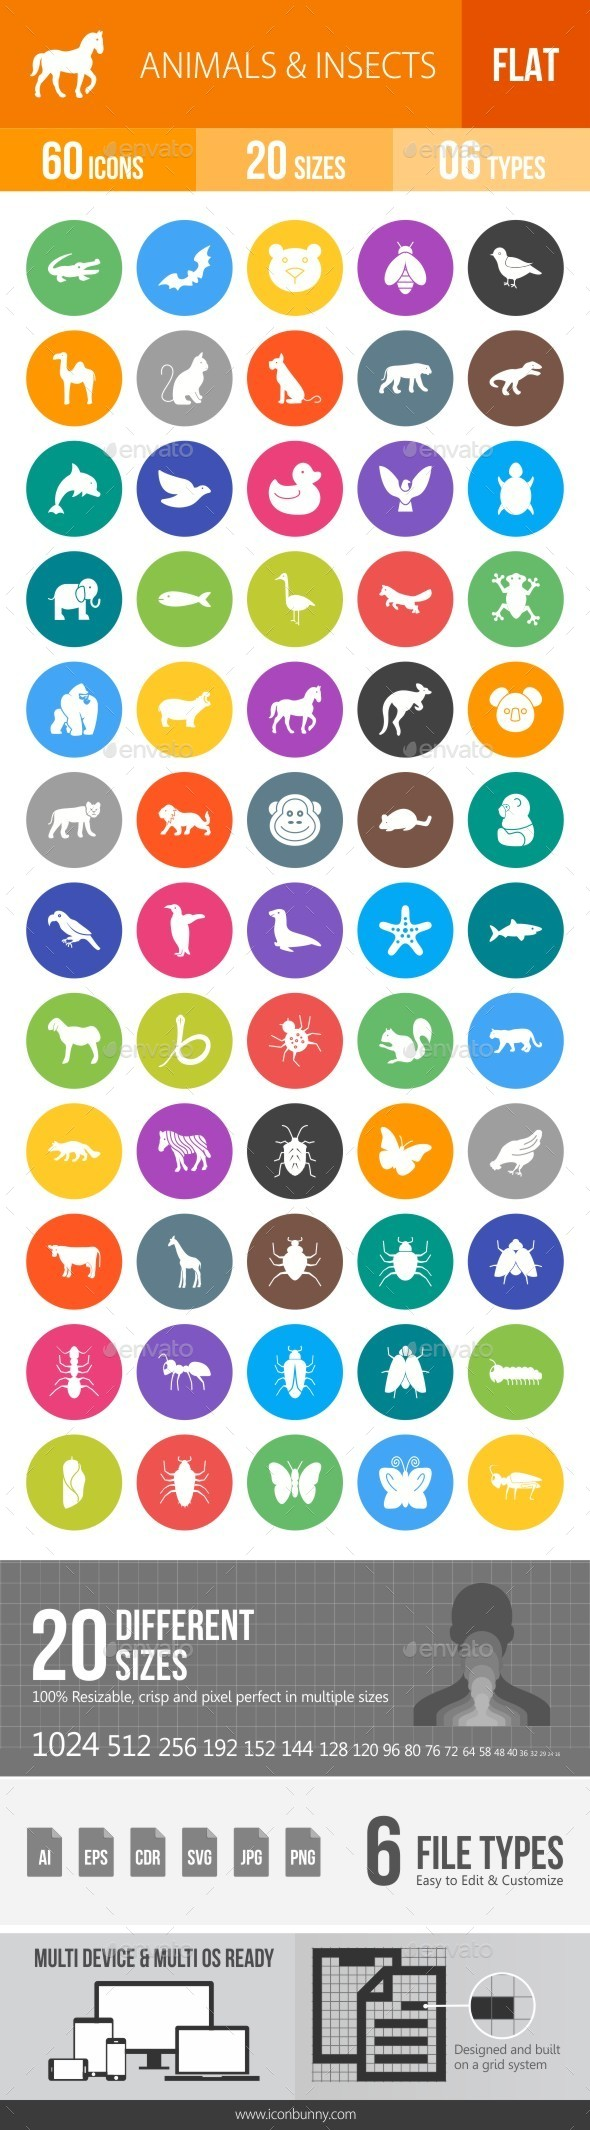 Animals & Insects Flat Round Icons - Icons